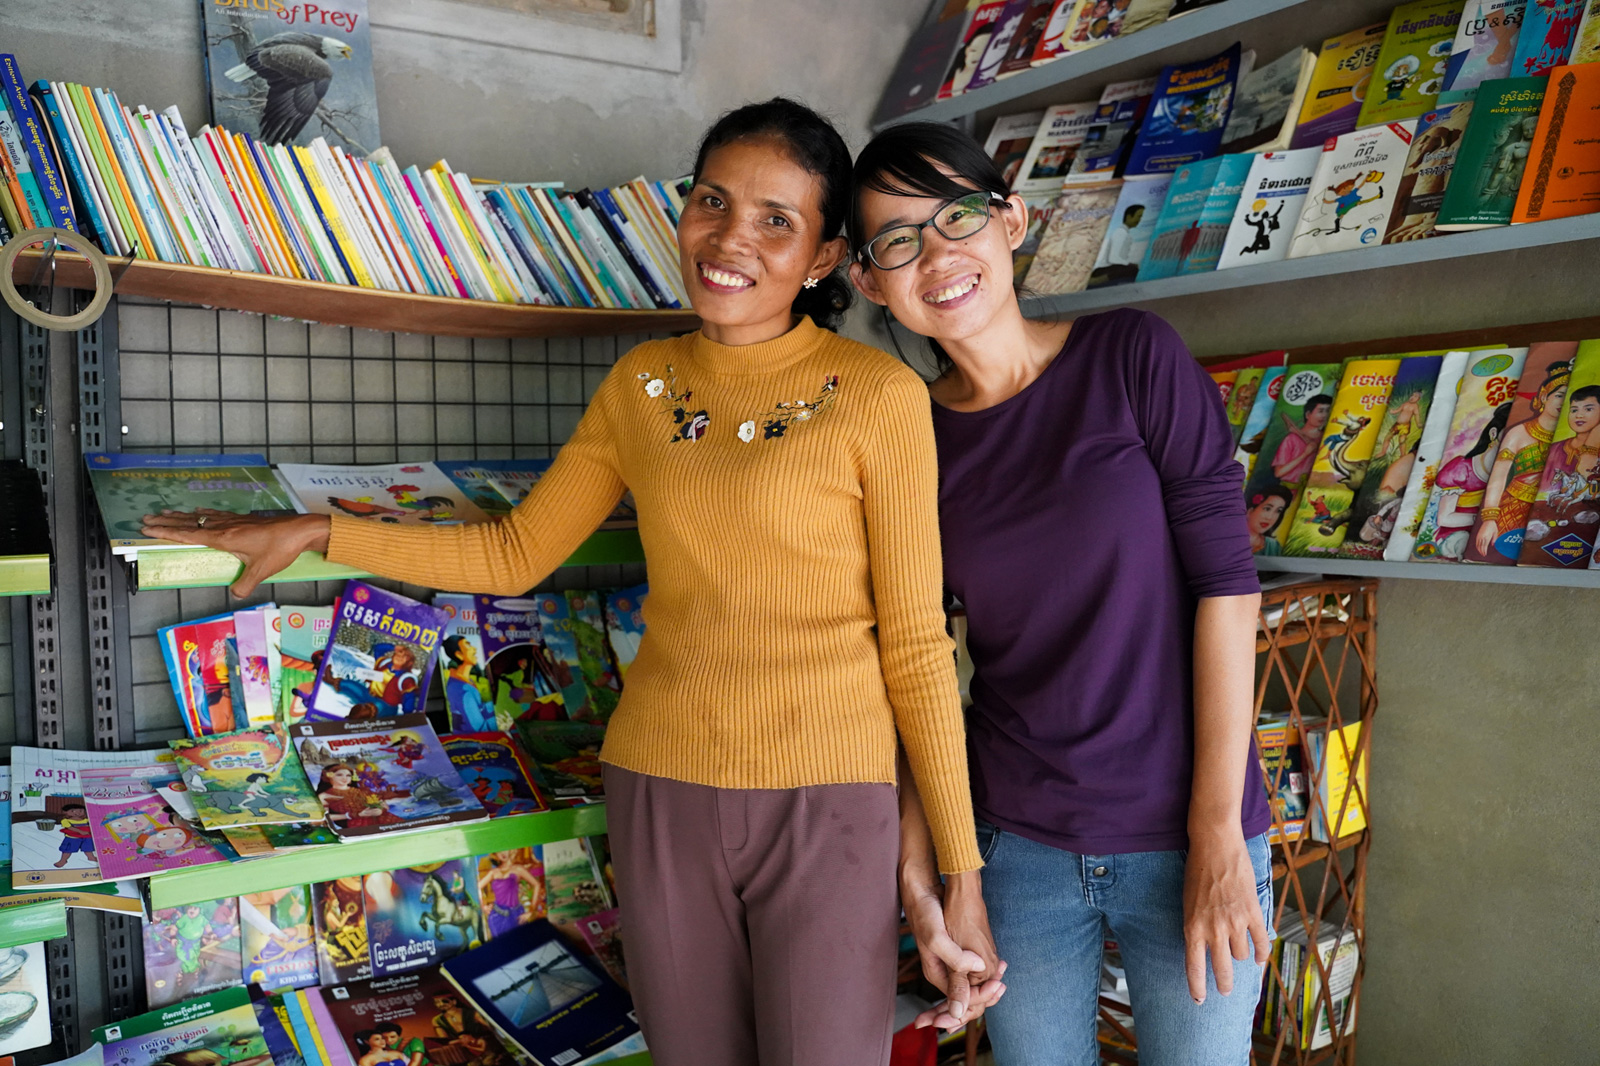 """Soth Bopha (right), 29, knew Khat Da (left), 41, was the right person to choose as a librarian for the first Village Library in Areak Svay Village. """"She does things from the heart, not for money,"""" Bopha says, referring to Da."""